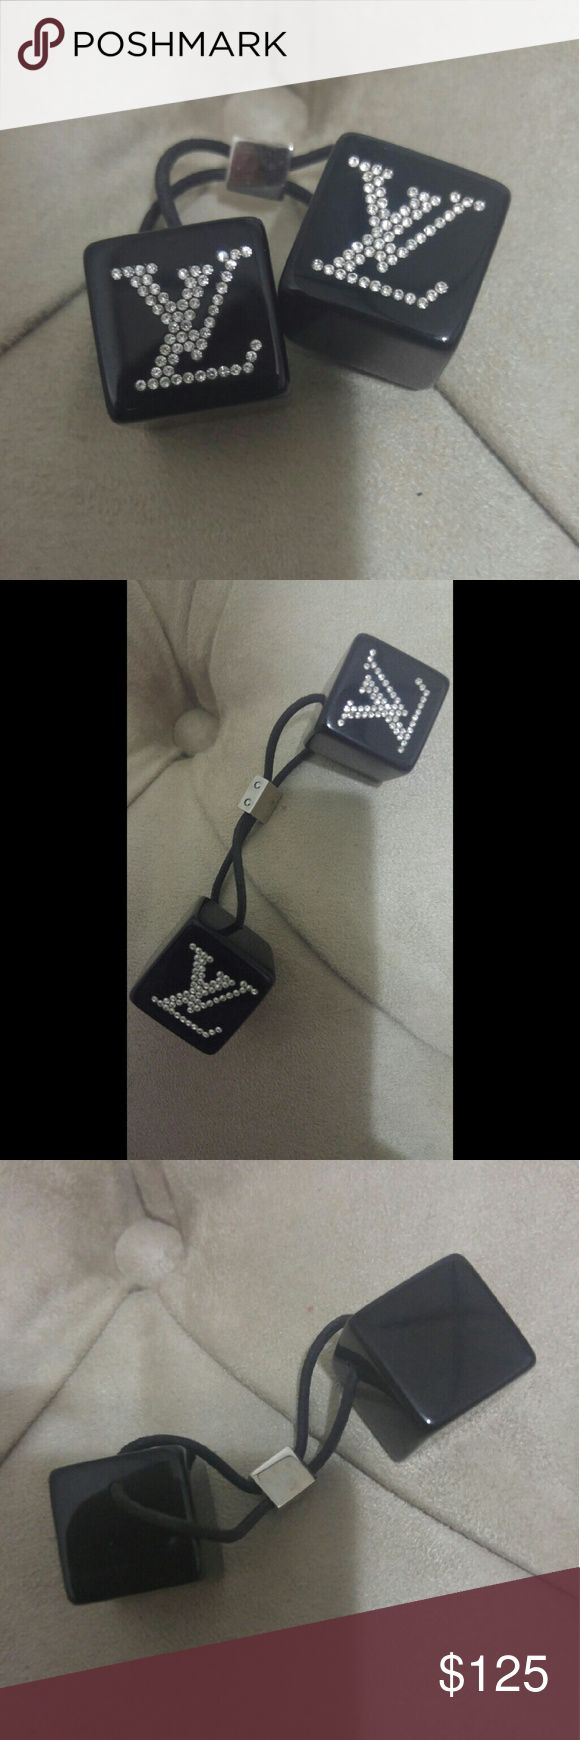 Authentic Louis Vuitton Swarovski Hair Cubes Limited Edition, very hard to find. Perfect condition, all stones in tact - elastic in perfect condition as well. Louis Vuitton Accessories Hair Accessories